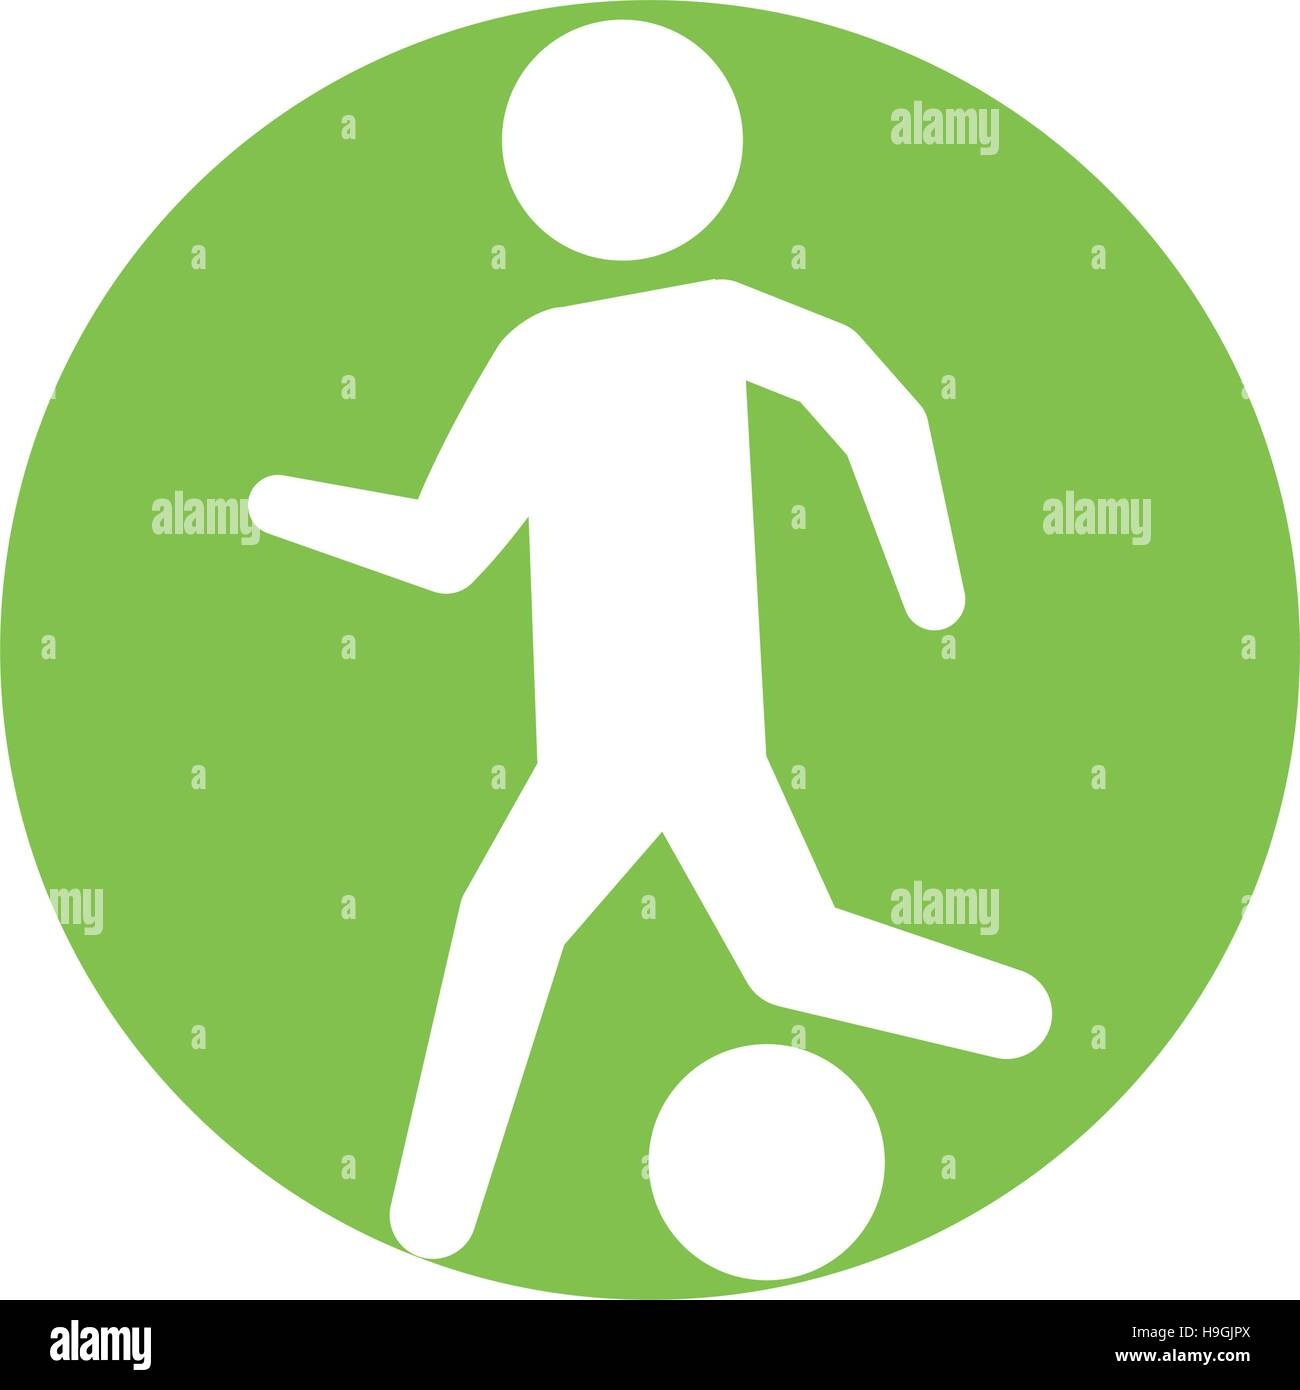 man silhouette player soccer green circle - Stock Image